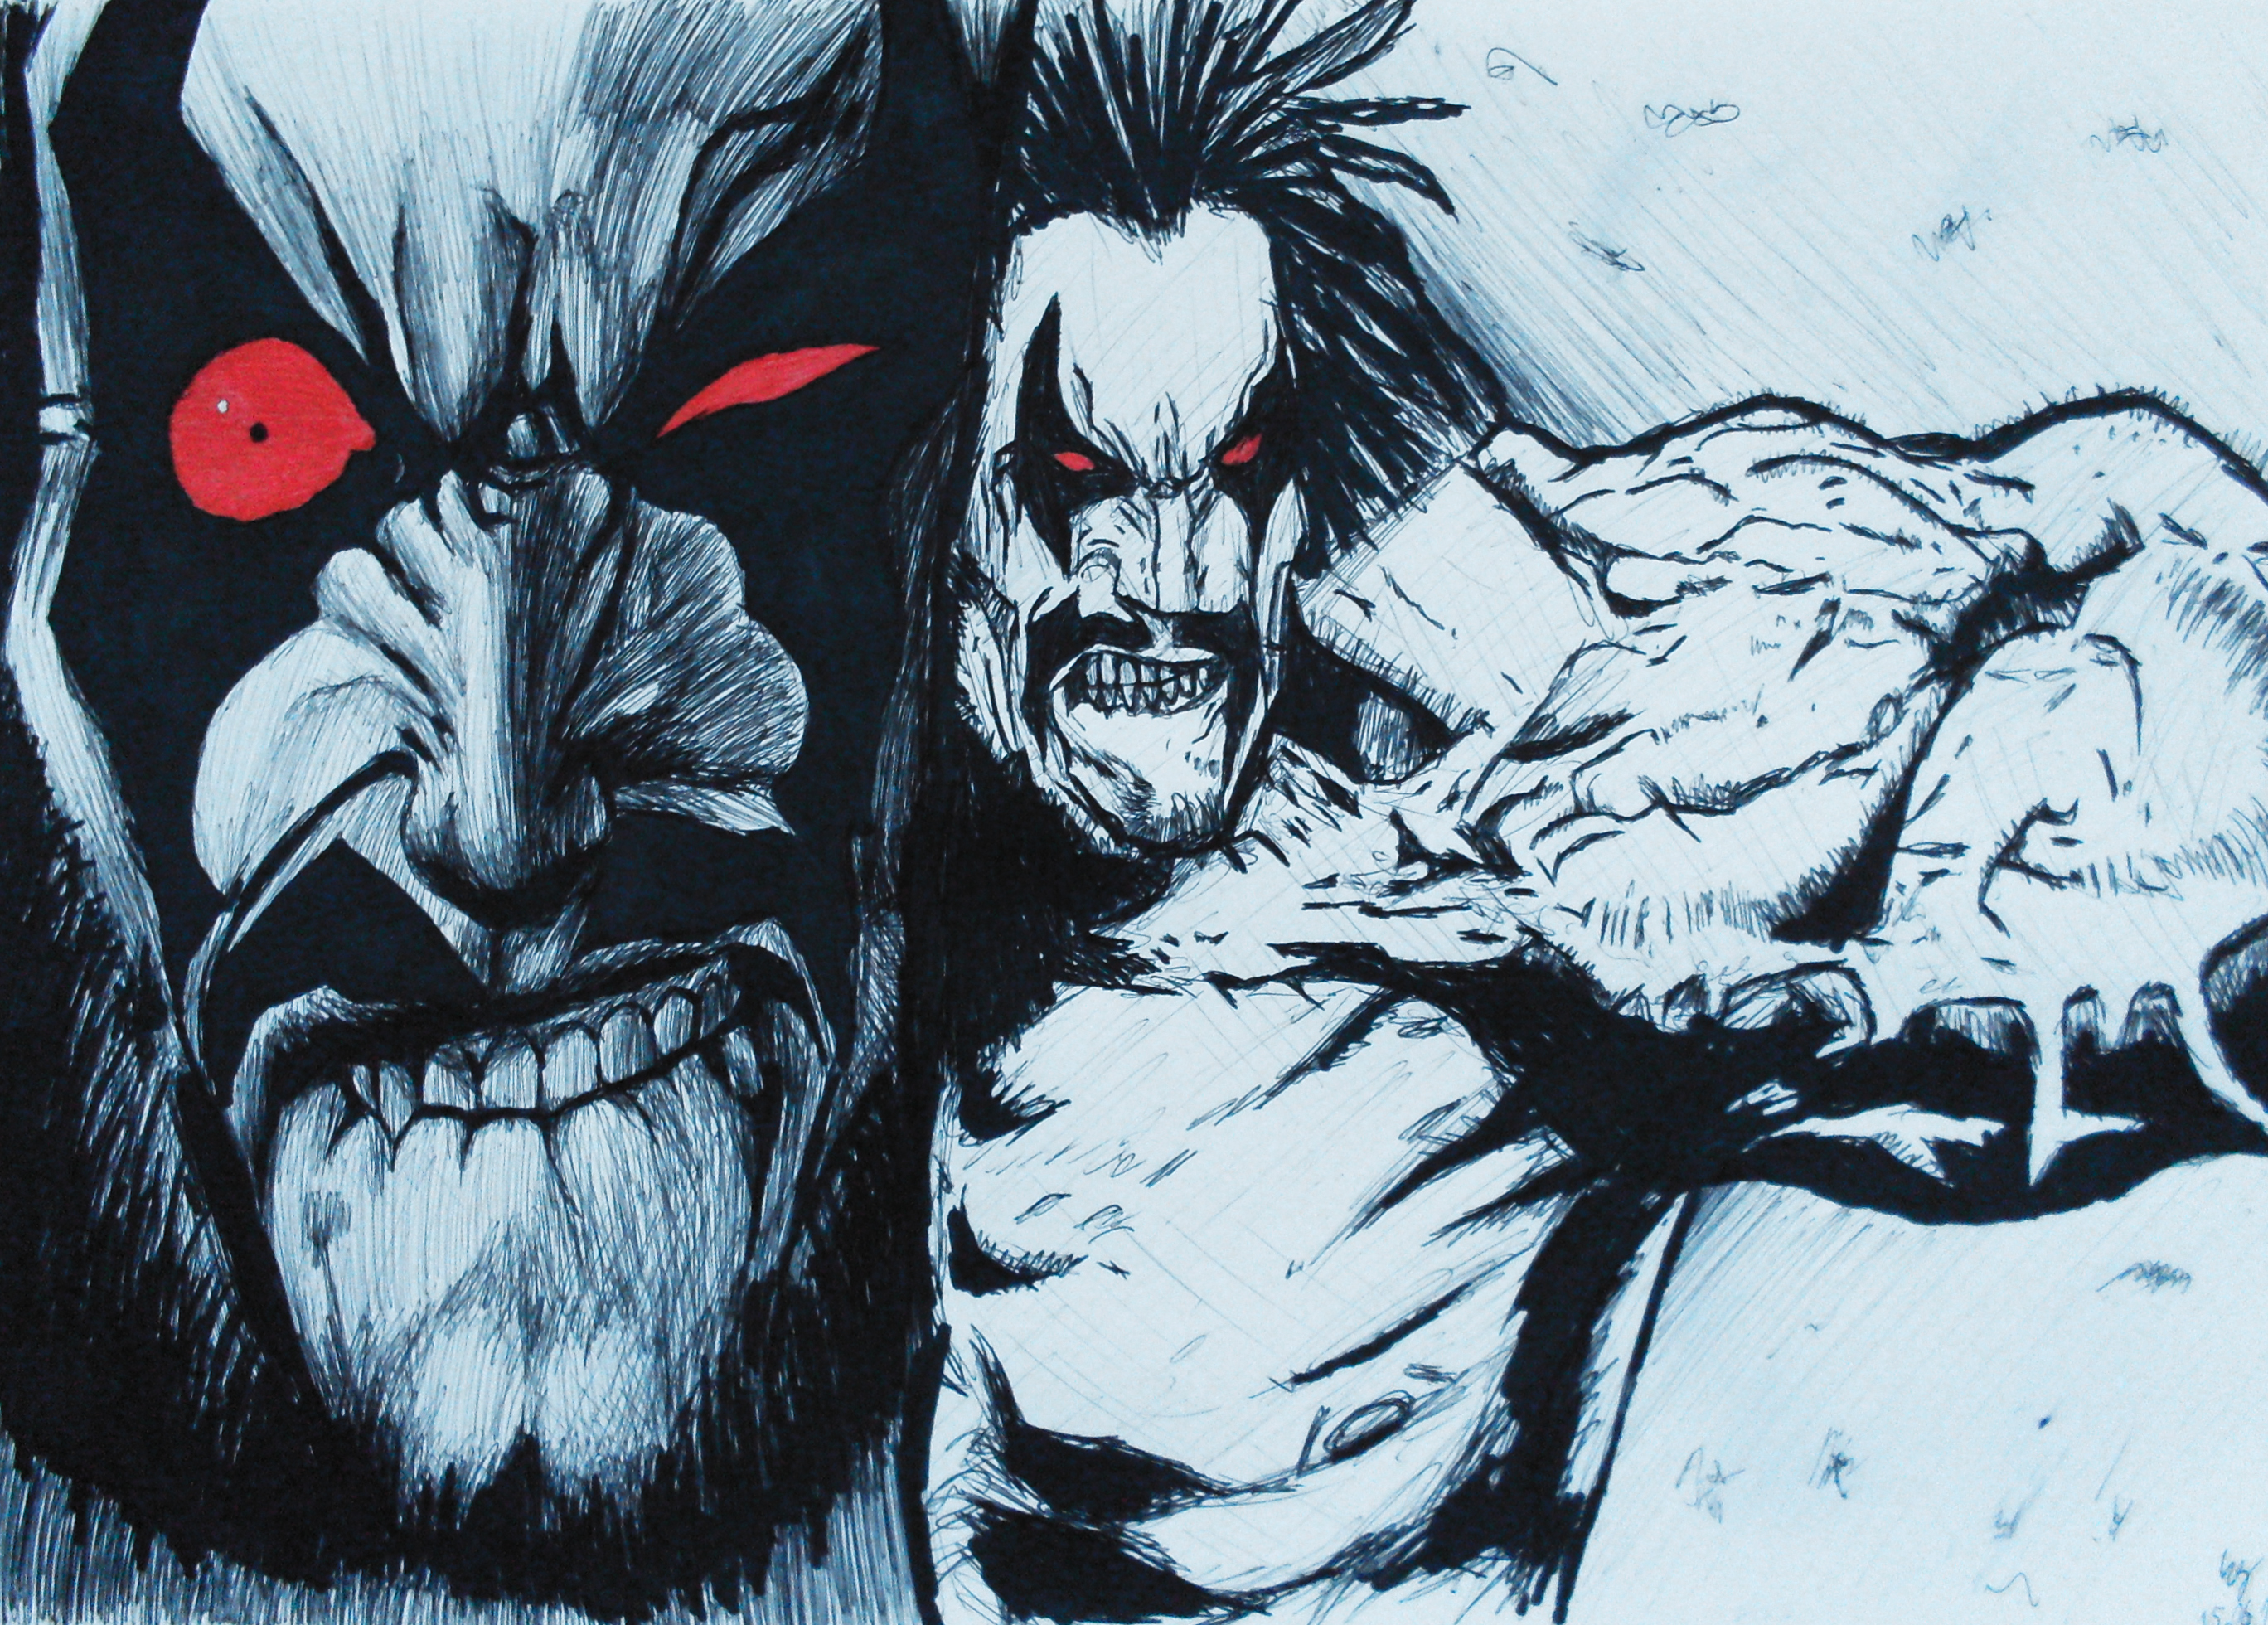 Lobo DC Comics Wallpapers Images TheCelebrityPix 2736x1960